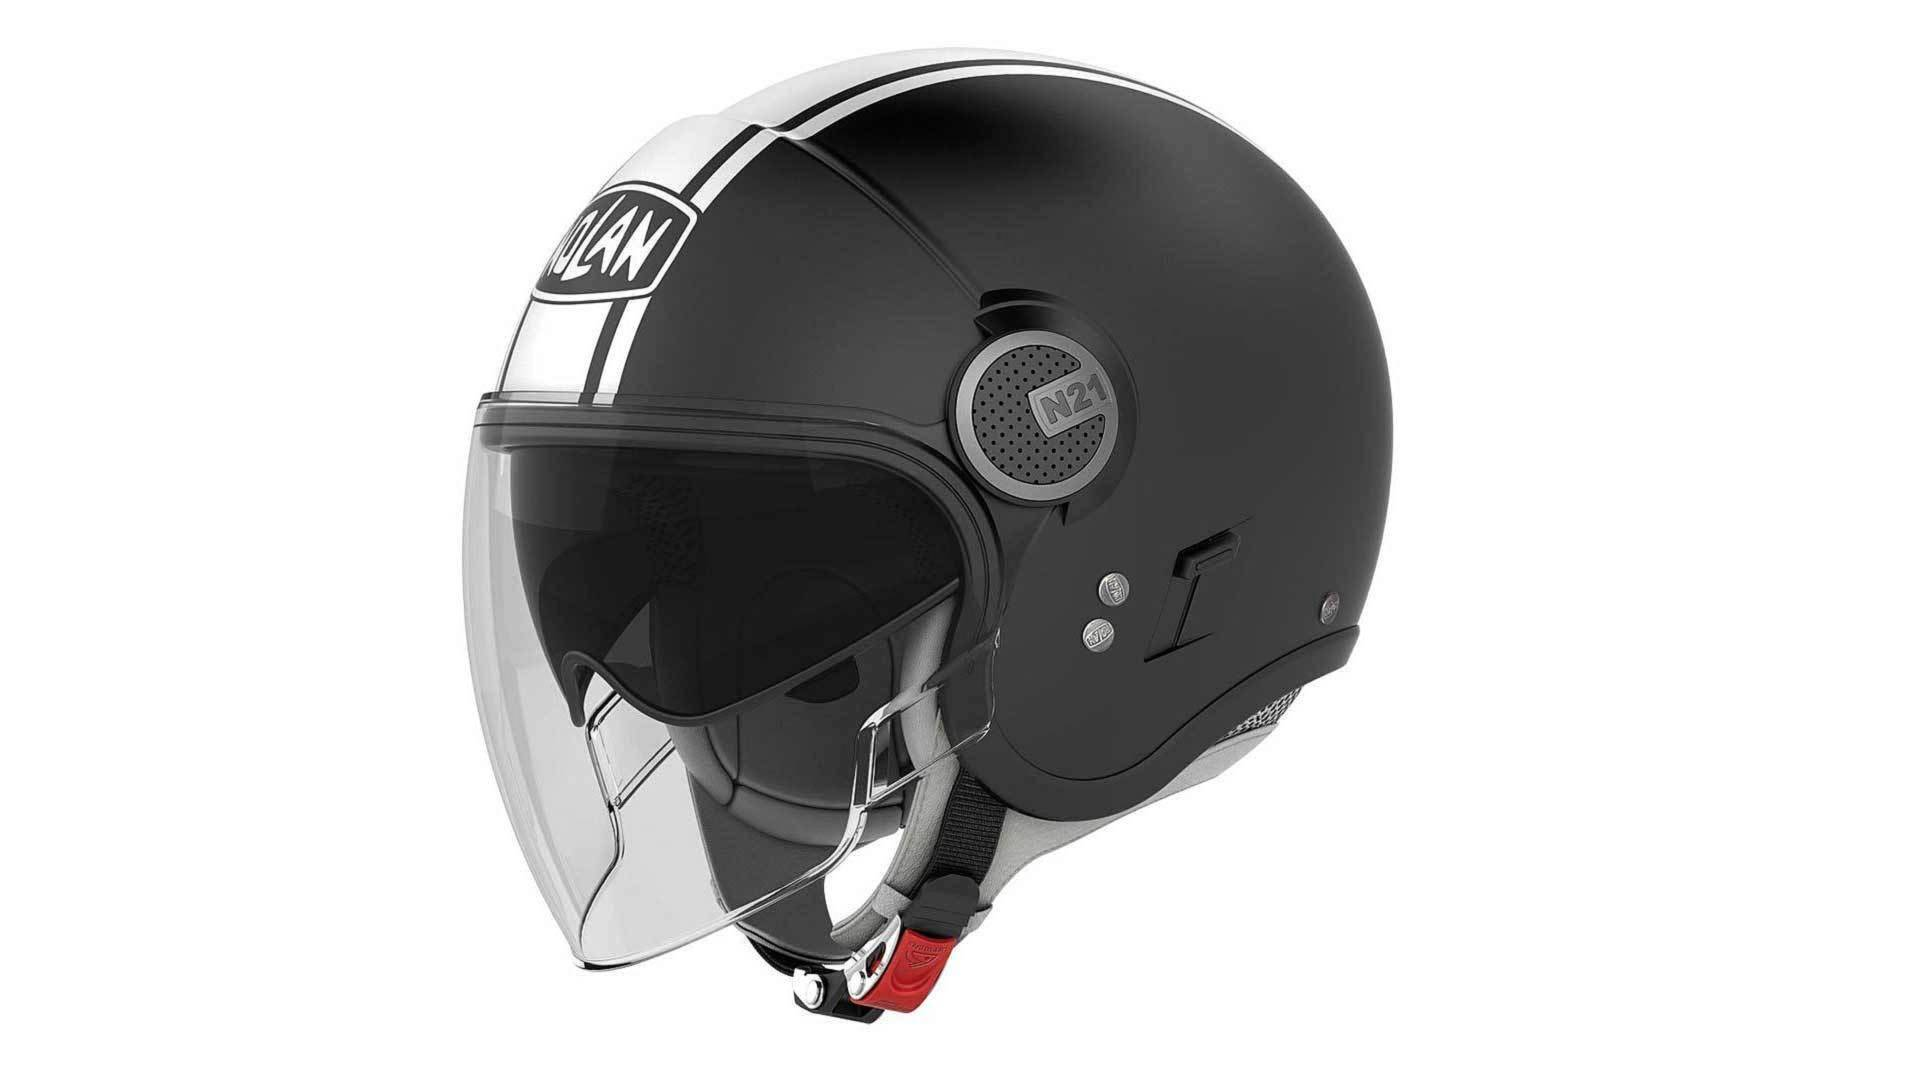 Safest Motorcycle Helmet >> 14 Affordable Motorcycle Helmets That Don T Suck